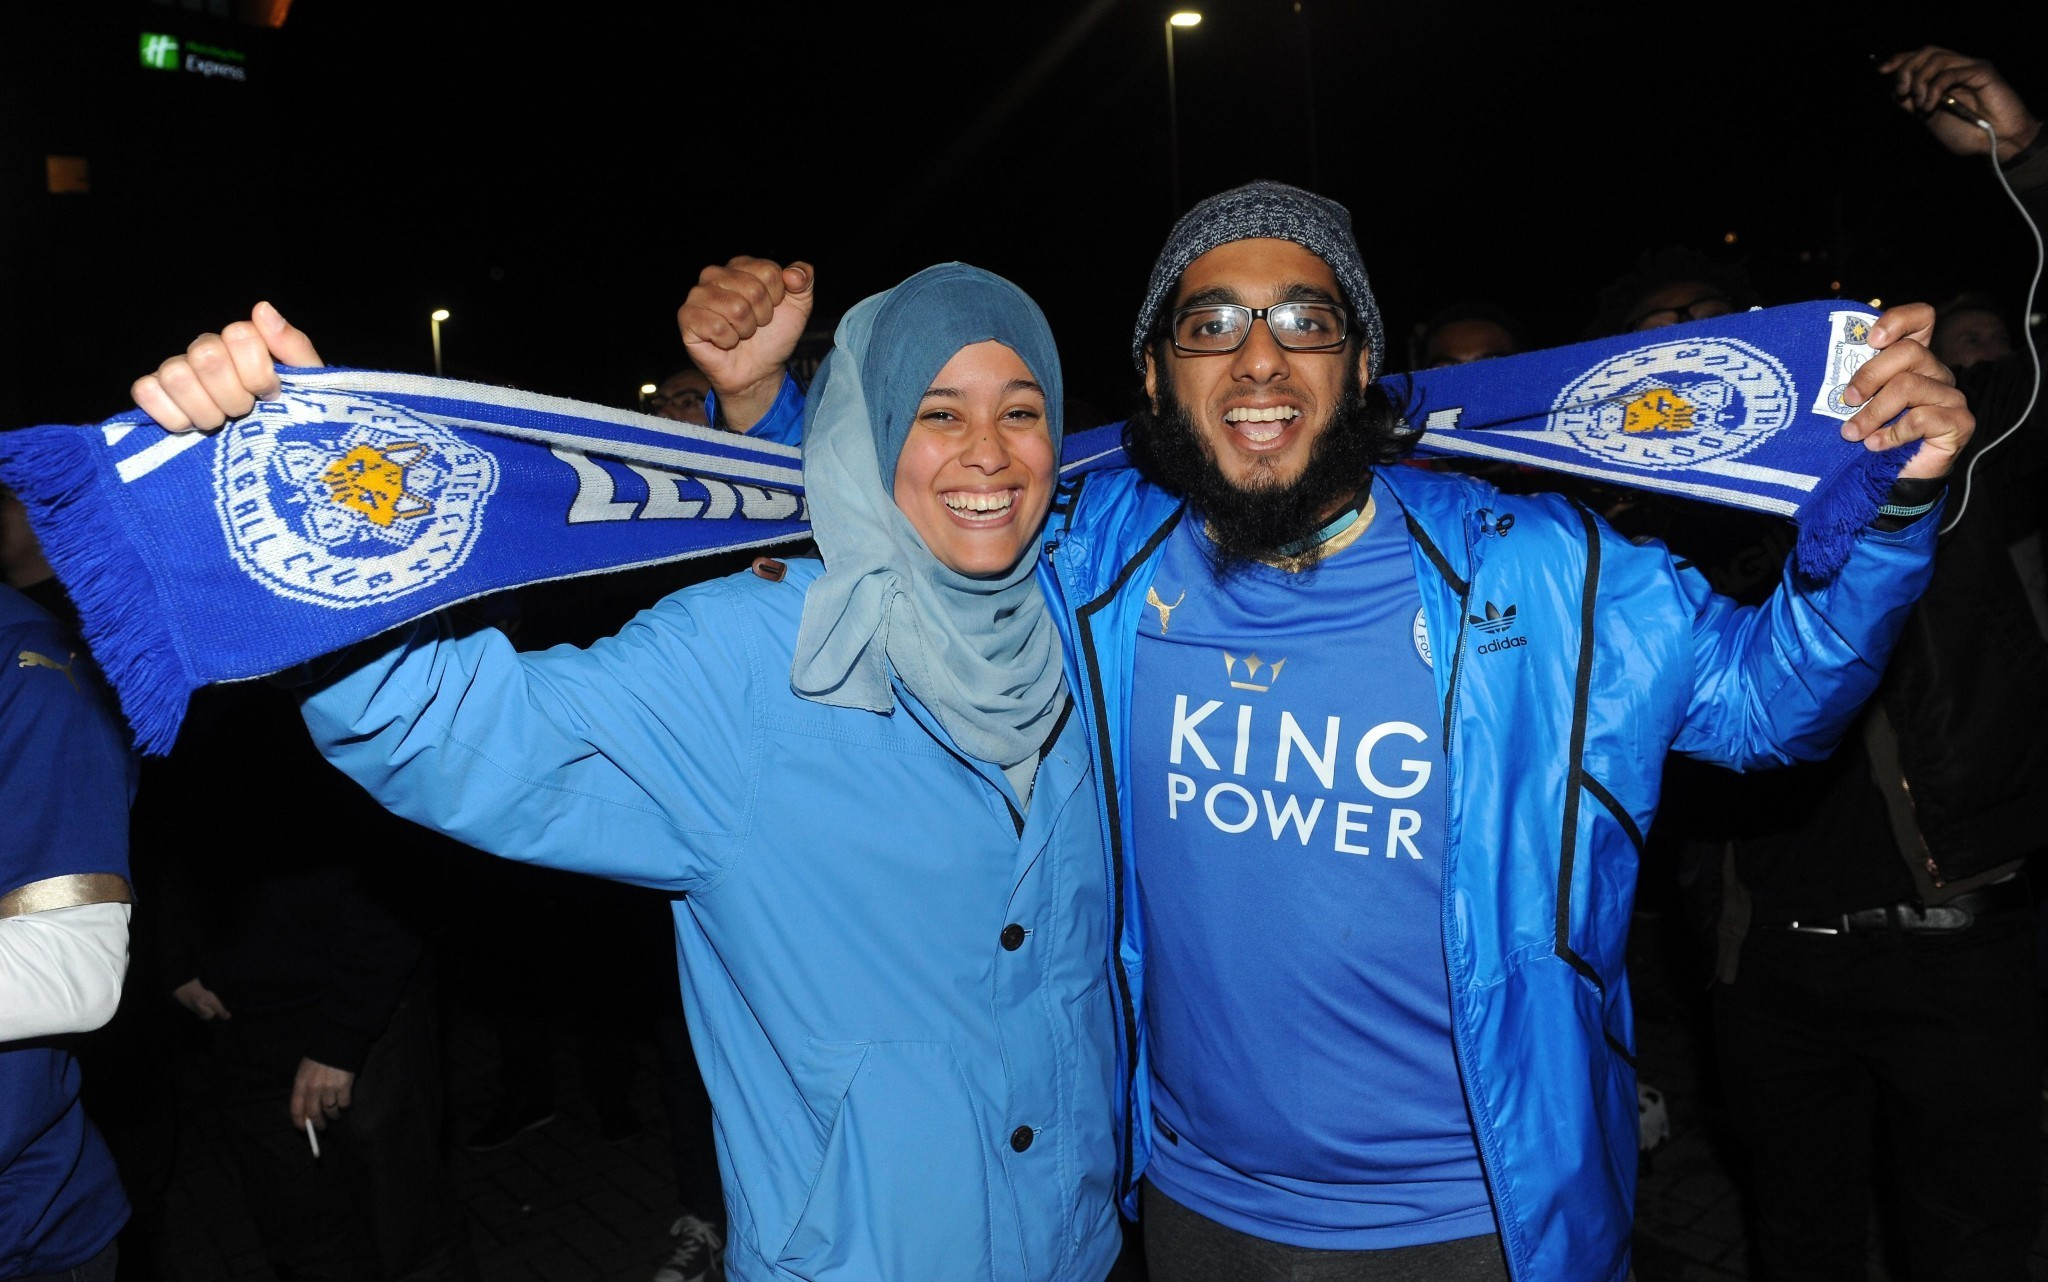 Leicester City fans celebrate – in pictures